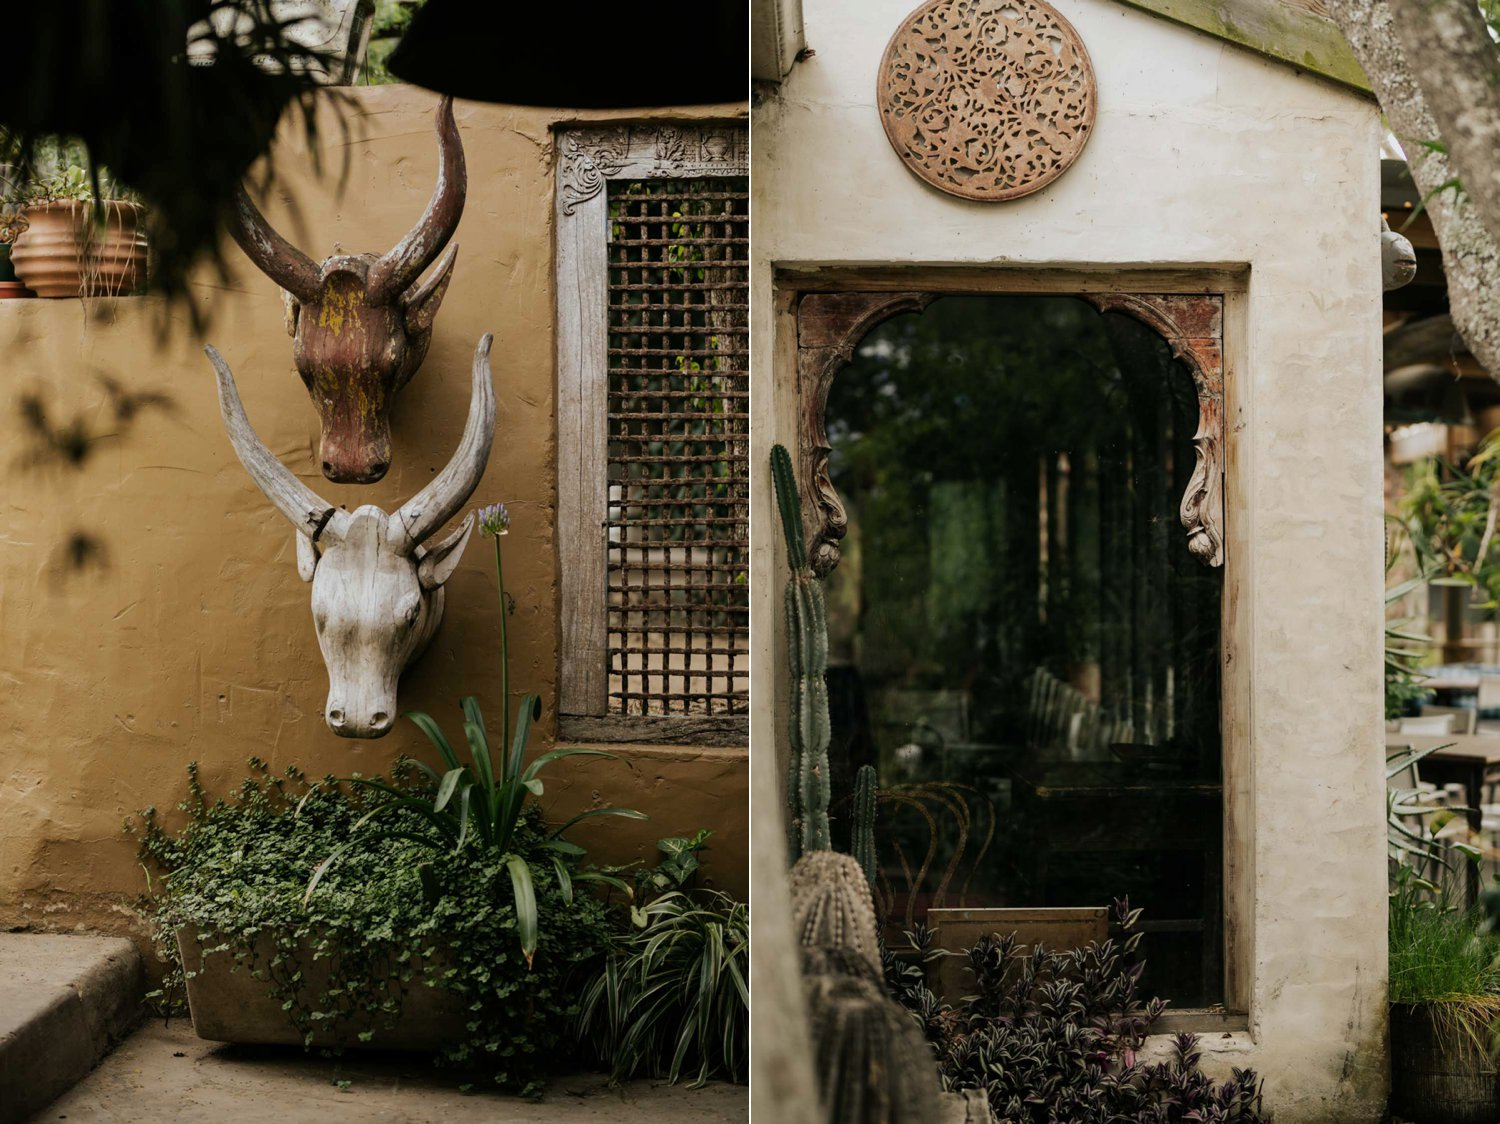 African artefacts and Bali inspired decor on the walls at Emily Moon Hotel in the Garden Route